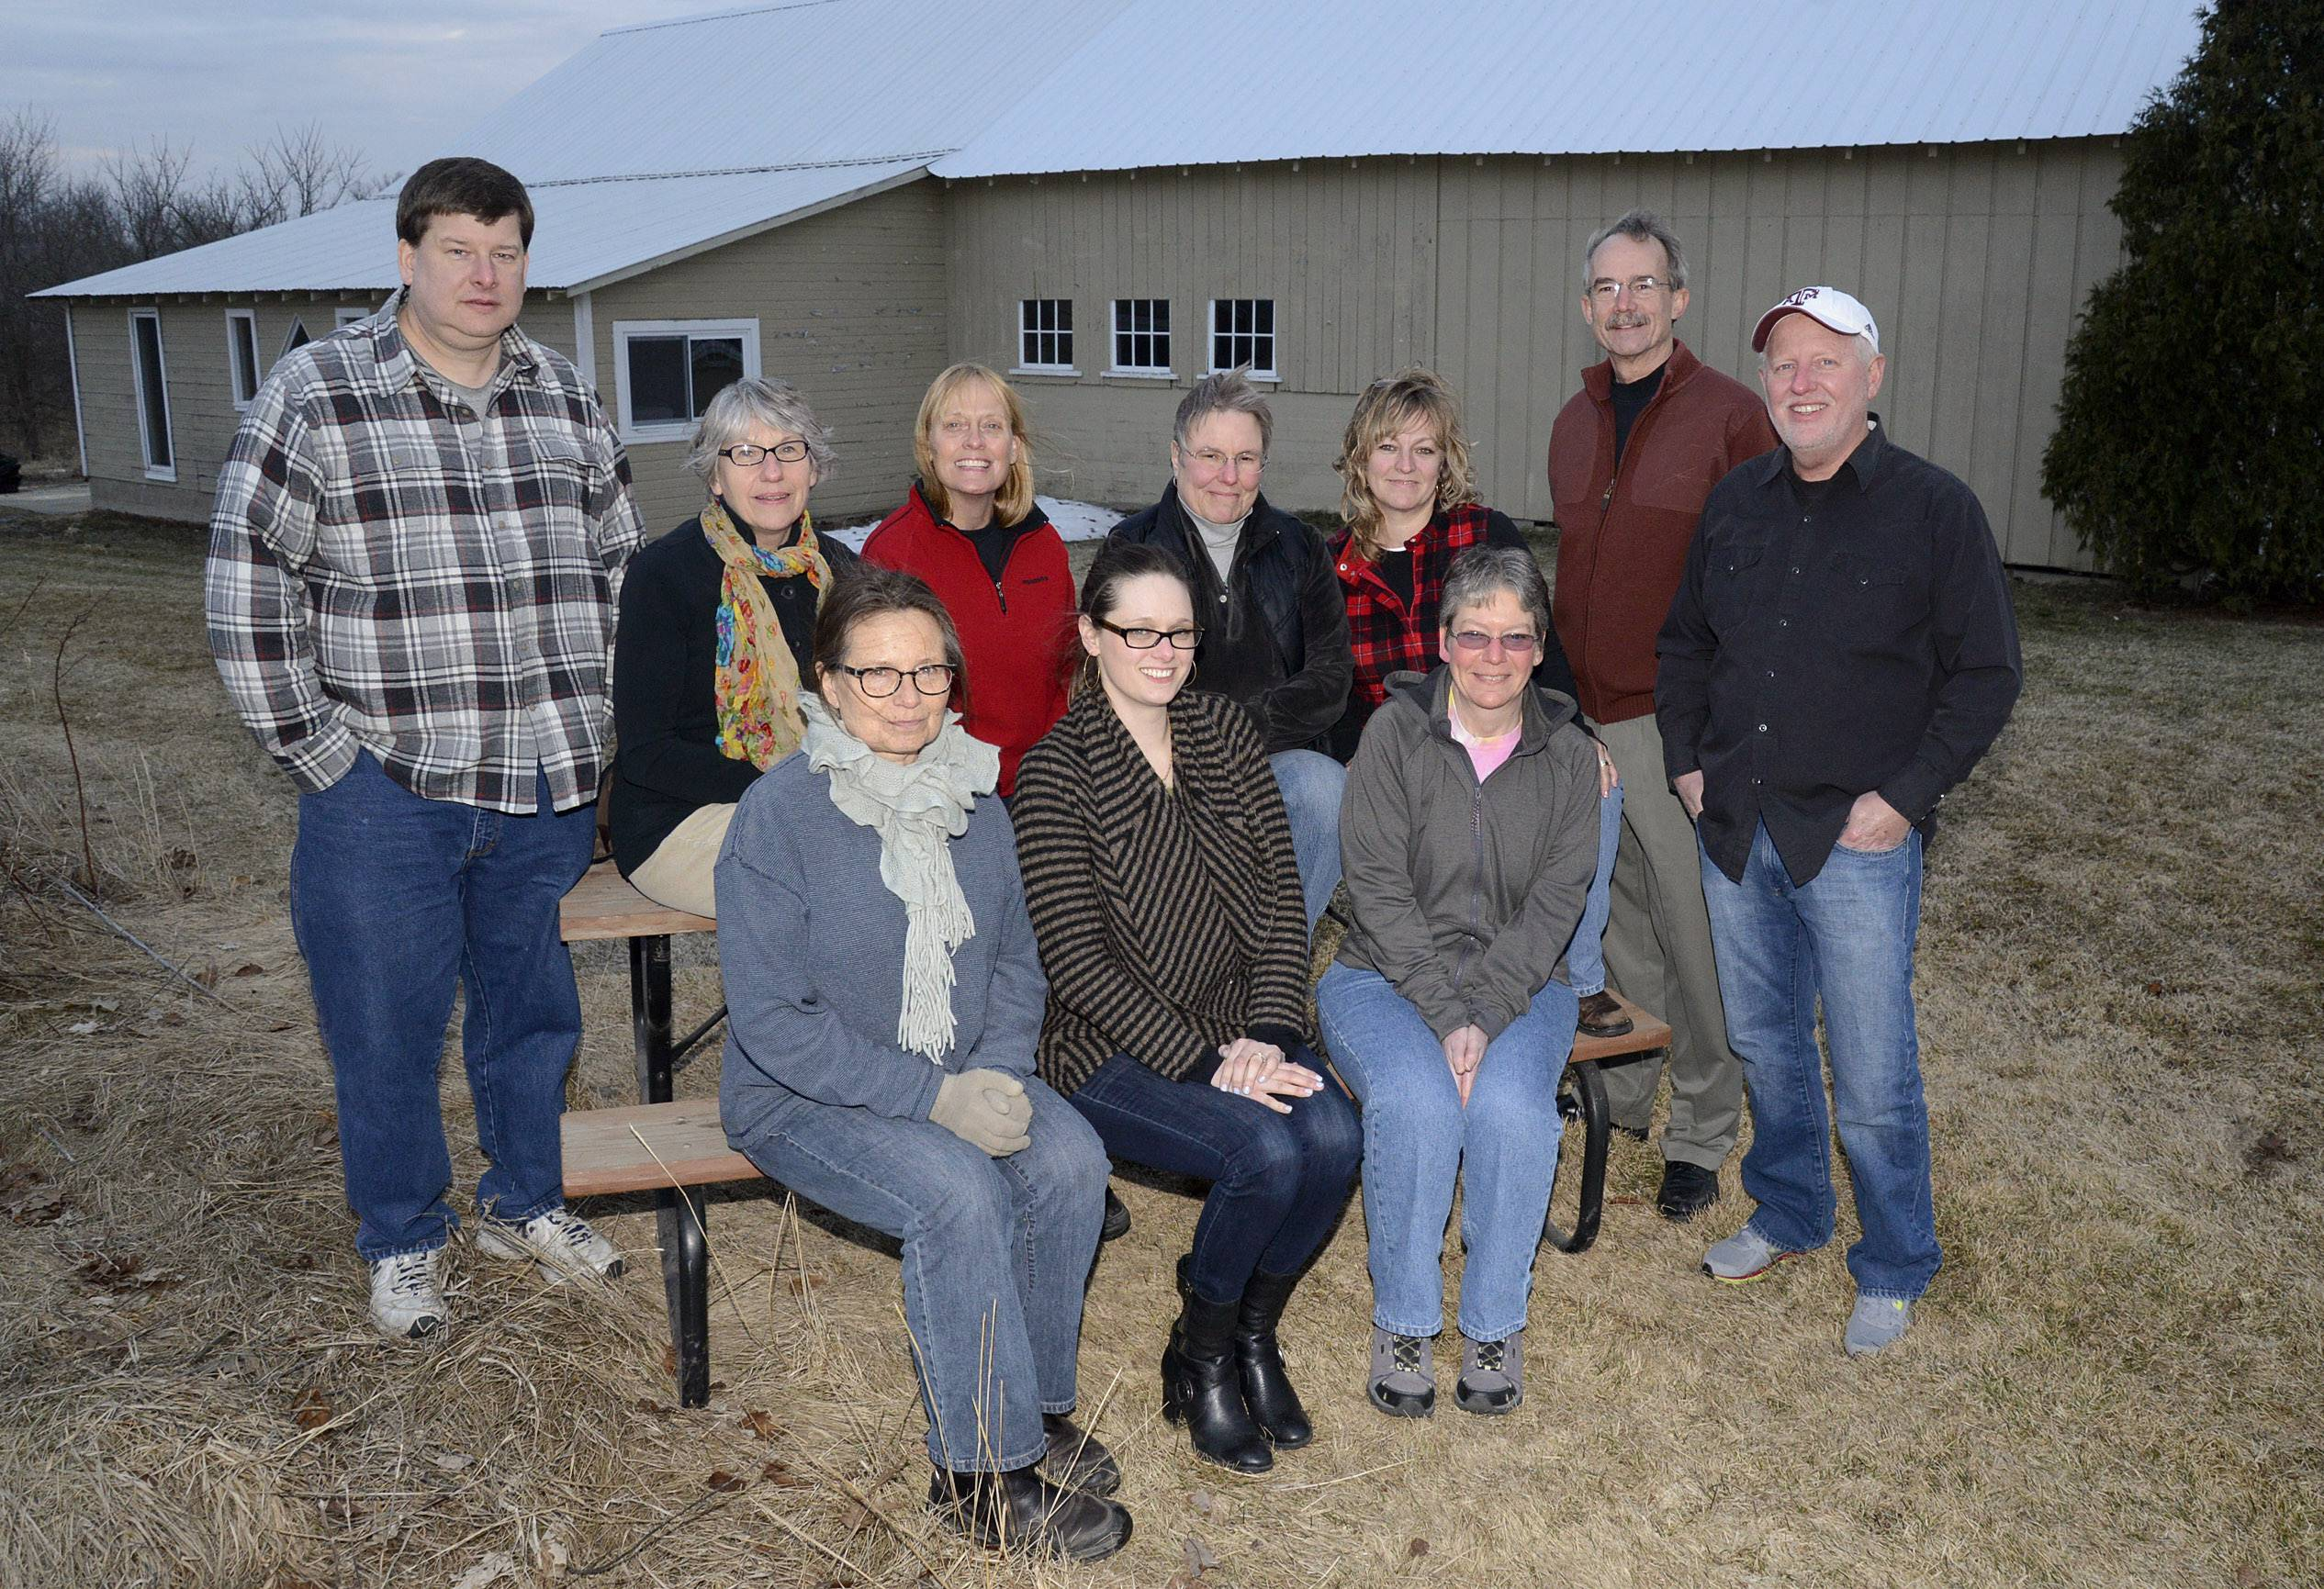 Members of the yet-to-be-named McHenry area food co-op meet at the Marengo home of steering team member Scott Brix, back row, far right.